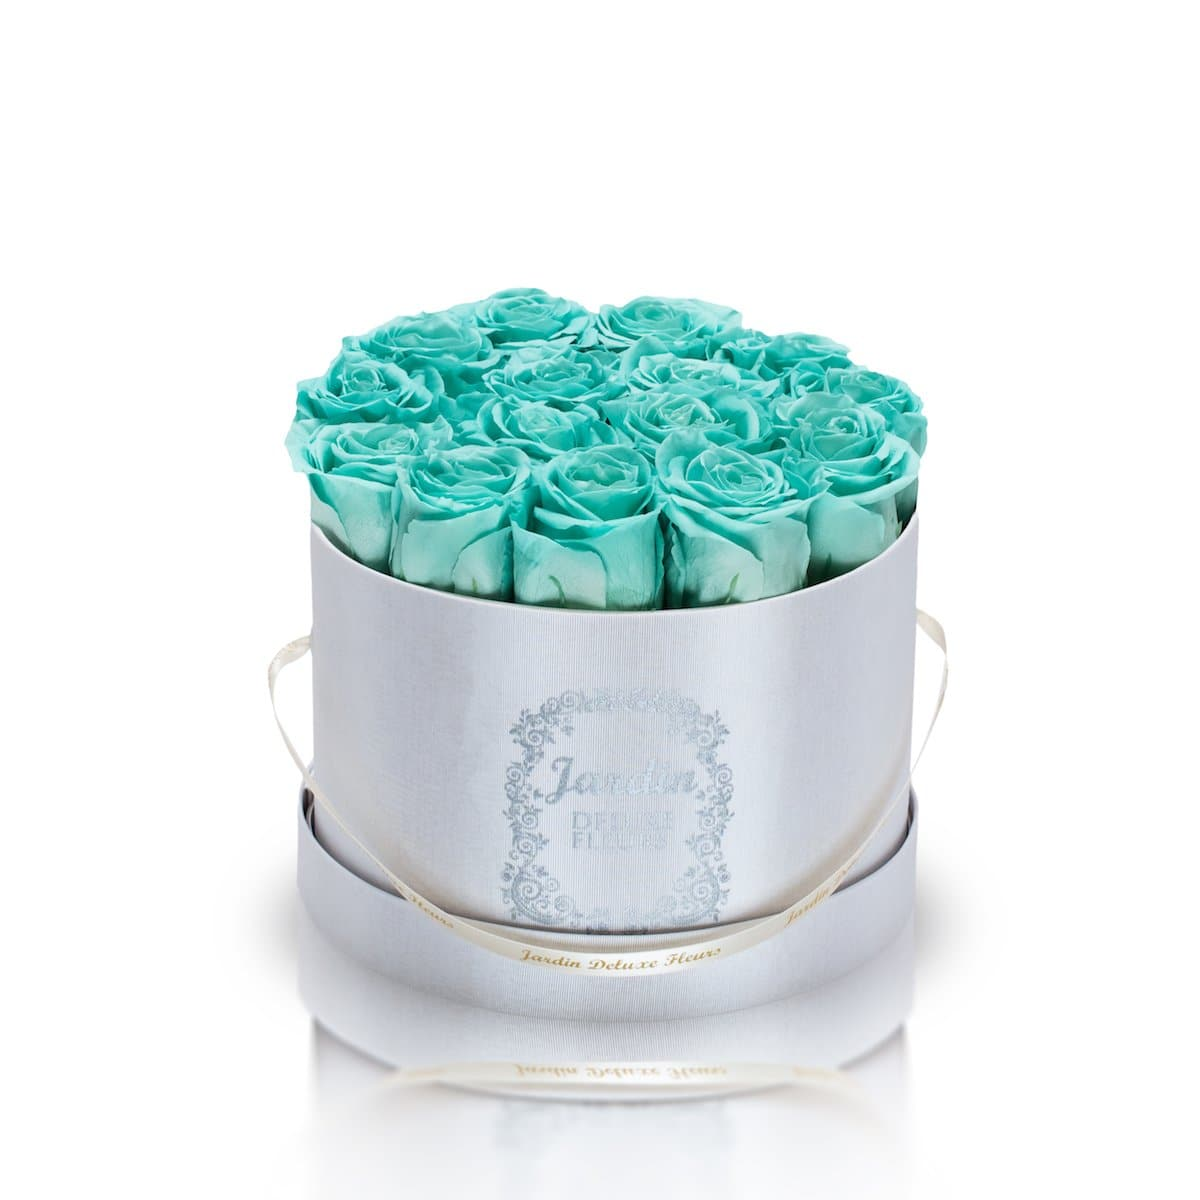 Parisian Inspired Tiffany Blue Real Roses that Last a Year